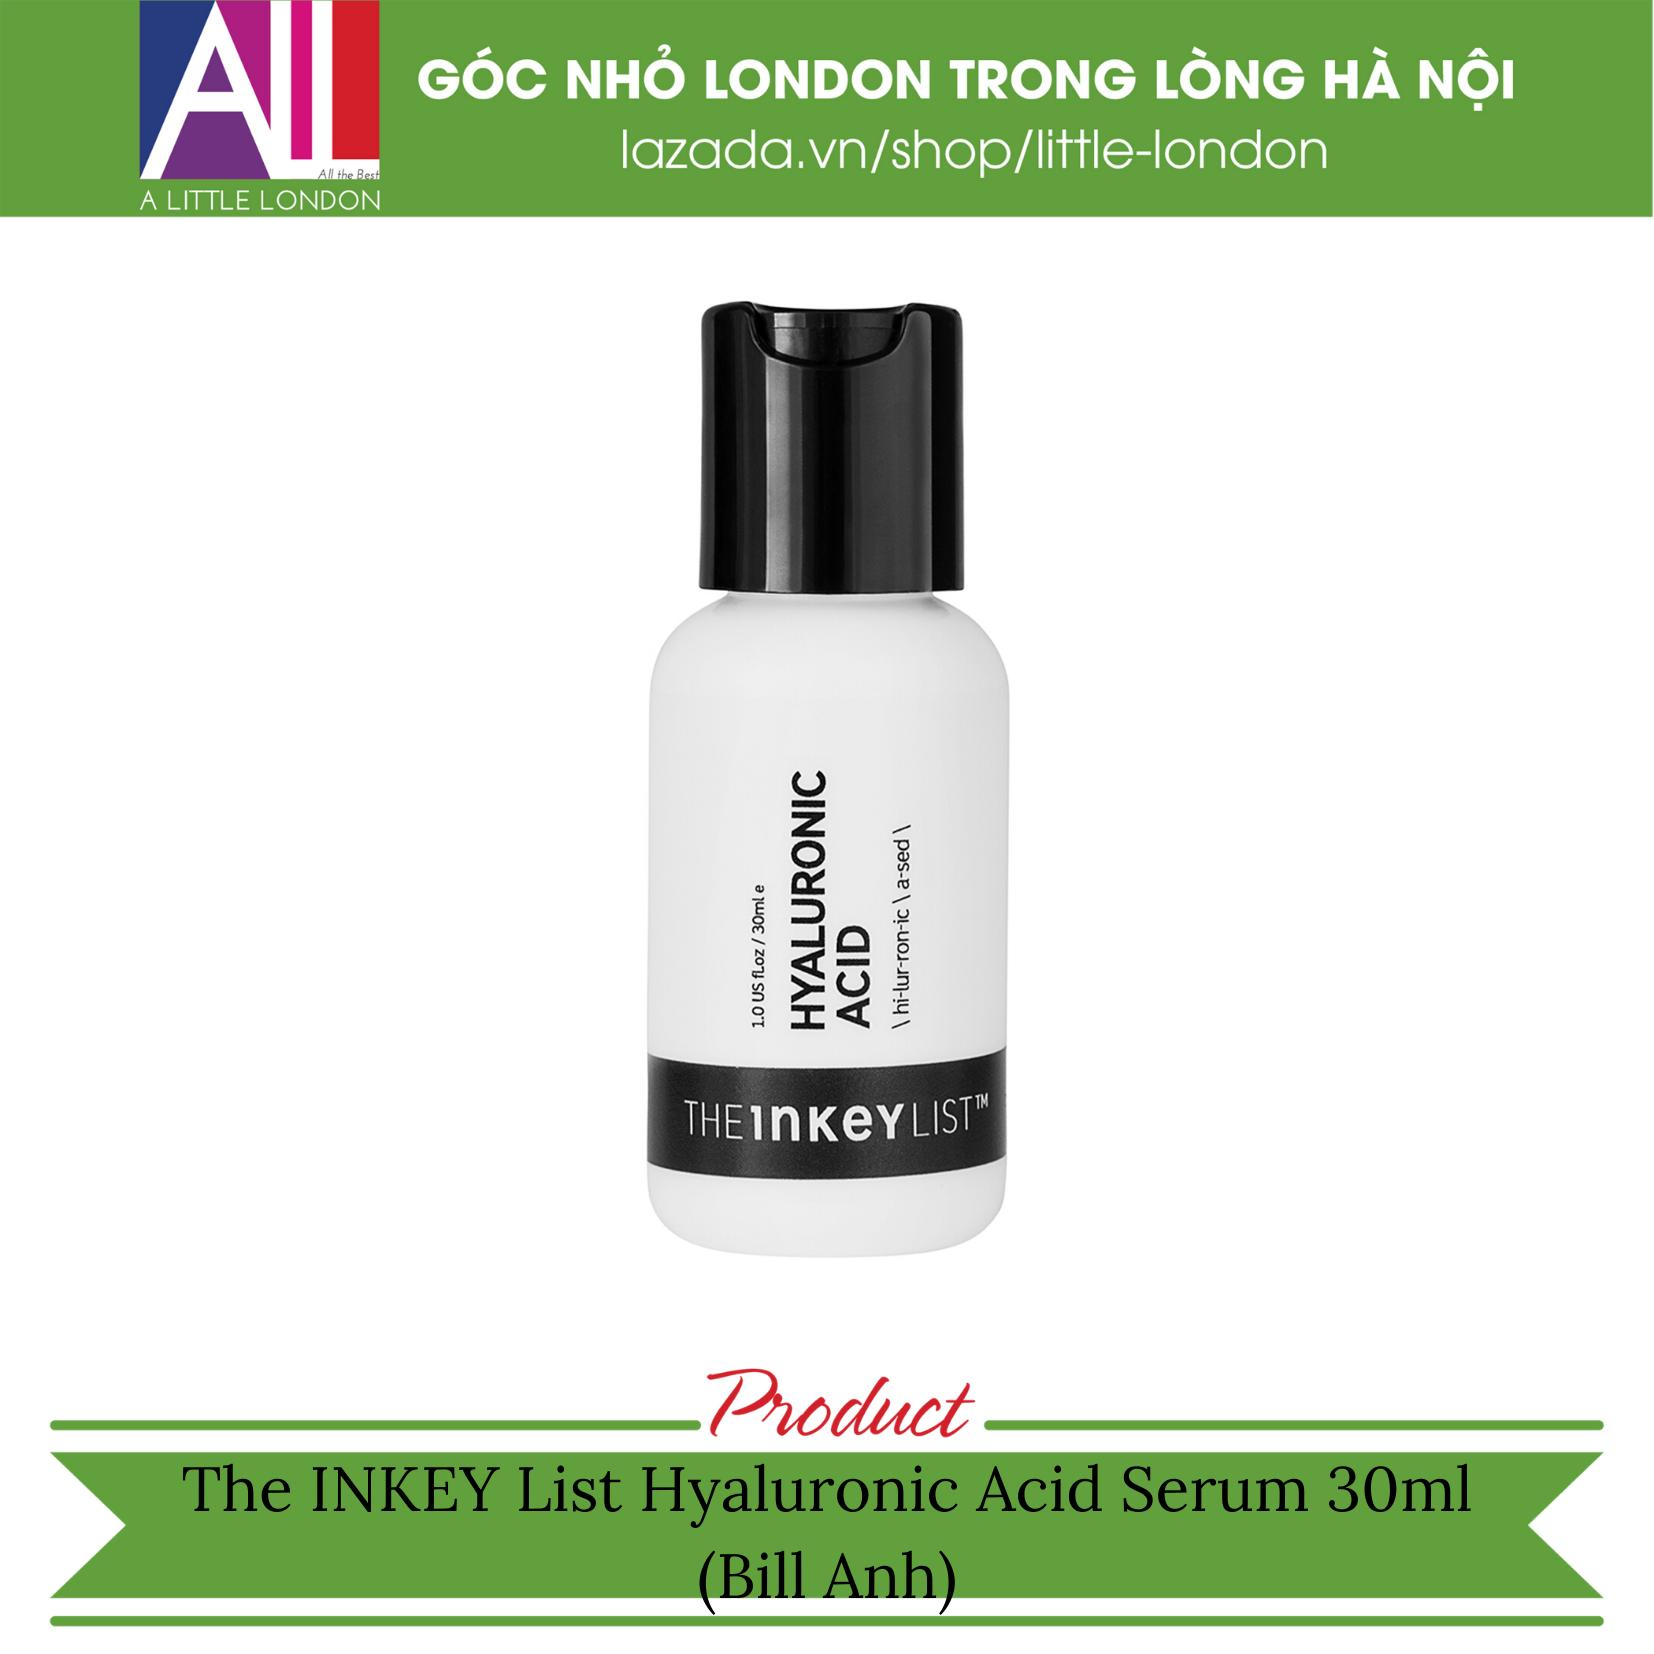 The INKEY List Hyaluronic Acid Serum 30ml (Bill Anh)